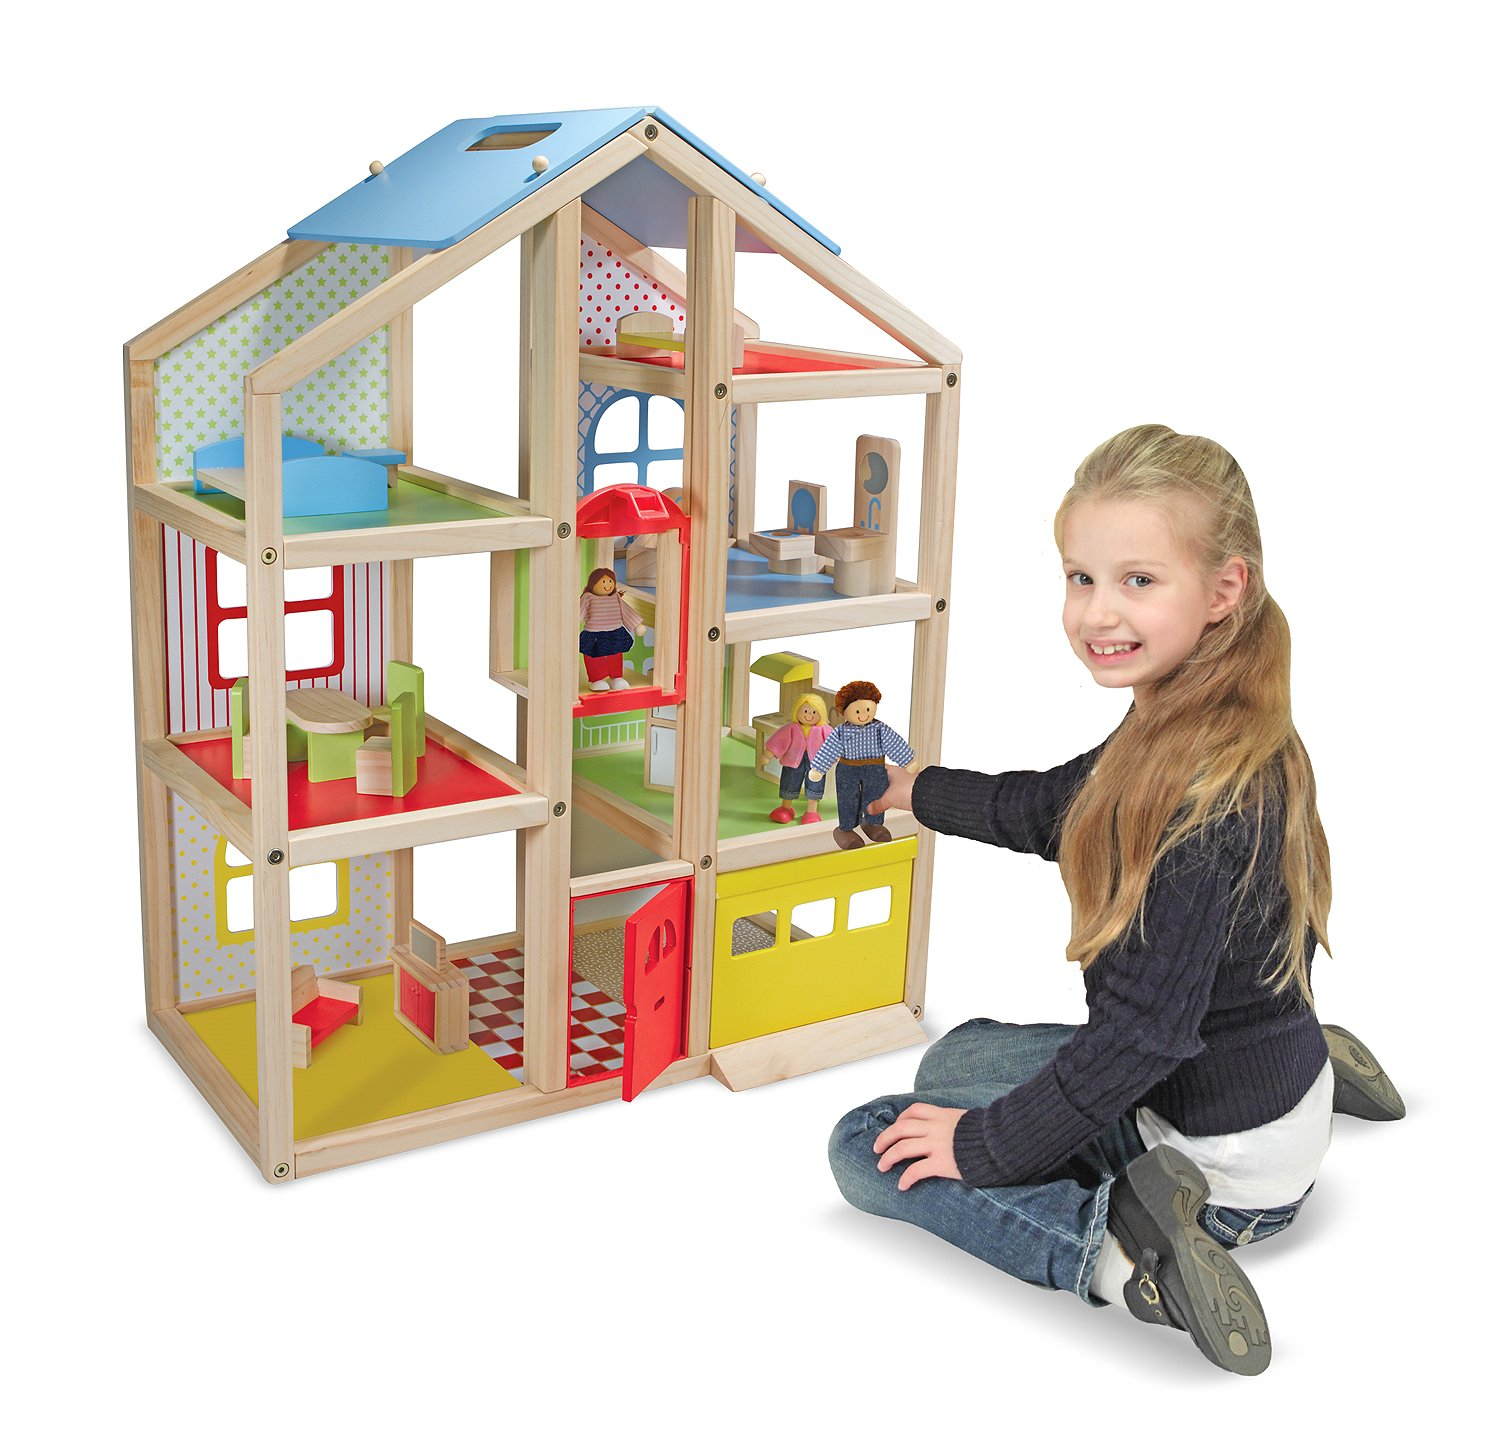 cheap wooden dollhouse furniture. Melissa \u0026 Doug Hi-Rise Wooden Dollhouse With 15 Pcs Furniture - Garage And Working Elevator, Dollhouses Amazon Canada Cheap